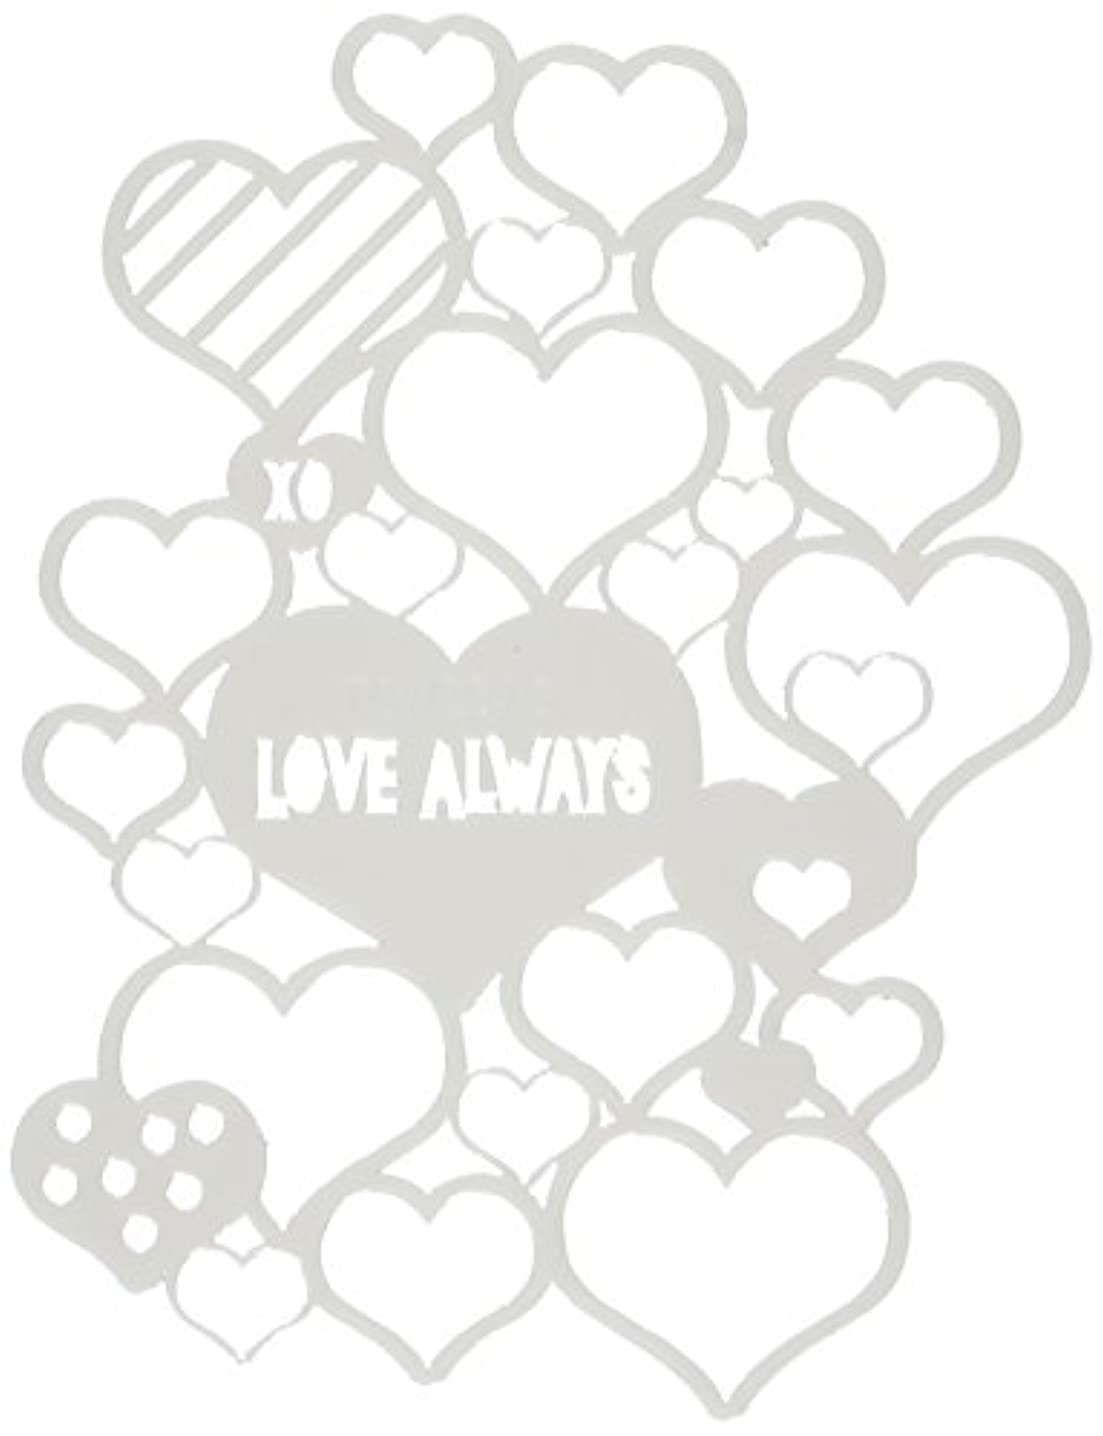 CRAFTERS WORKSHOP Love Always Fragments Templates, 4 by 4